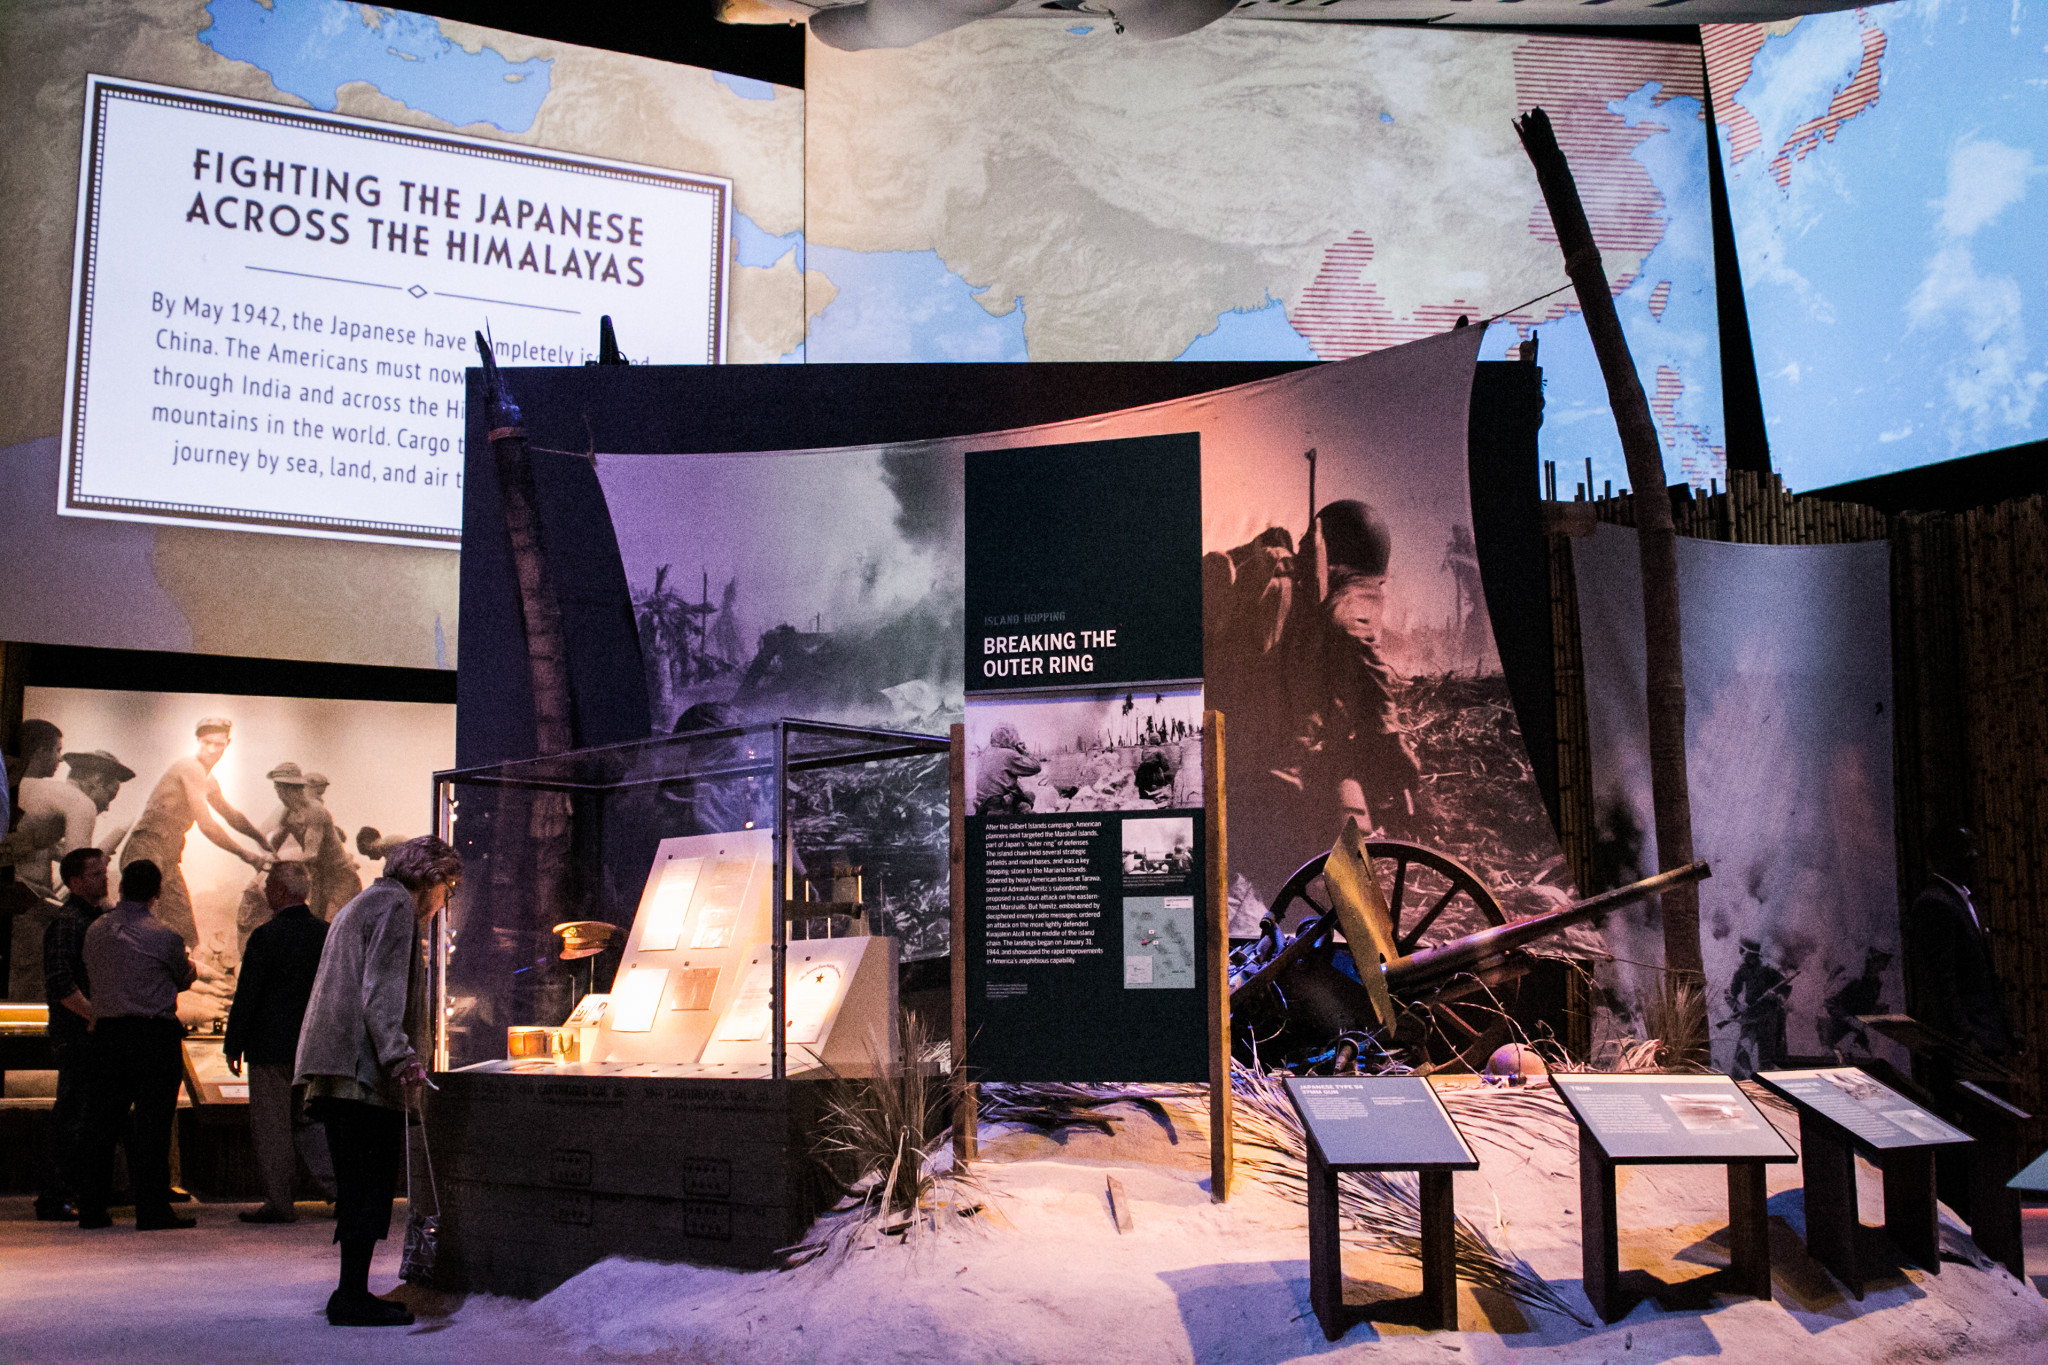 An immersive trip into the Himalayas as part of the Campaigns of Courage exhibit. (Photo: Rebecca Ratliff)